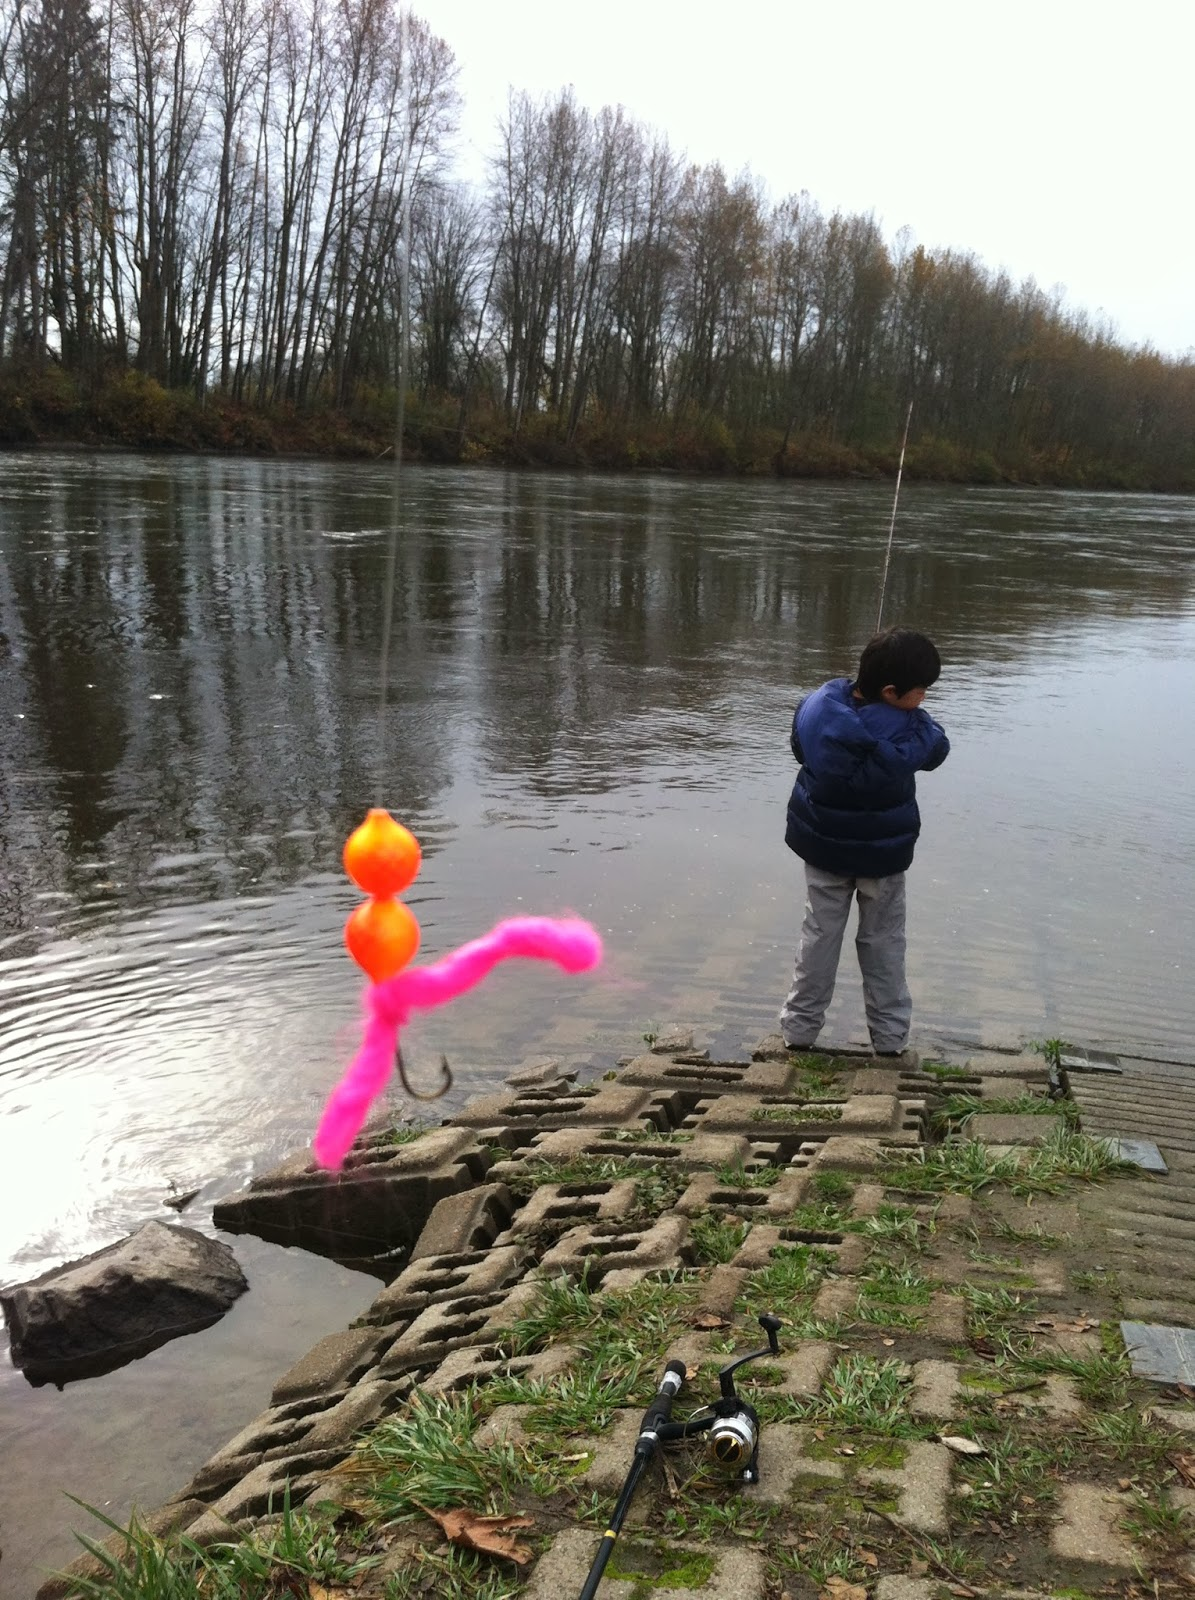 Fishing boy 39 s diary november 2013 for Snoqualmie river fishing